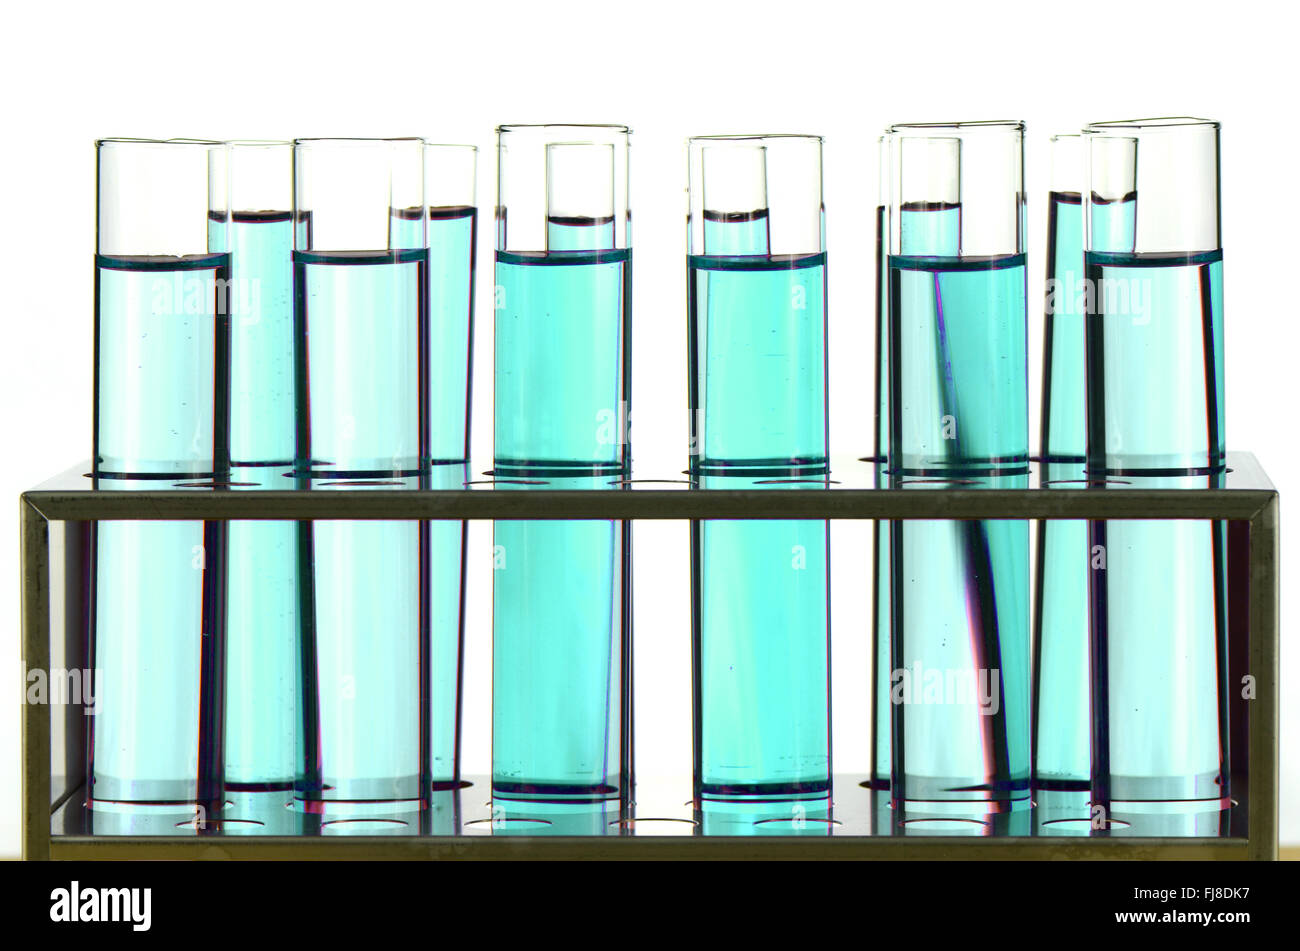 Test Tube in Close-up on White Background. Stock Photo